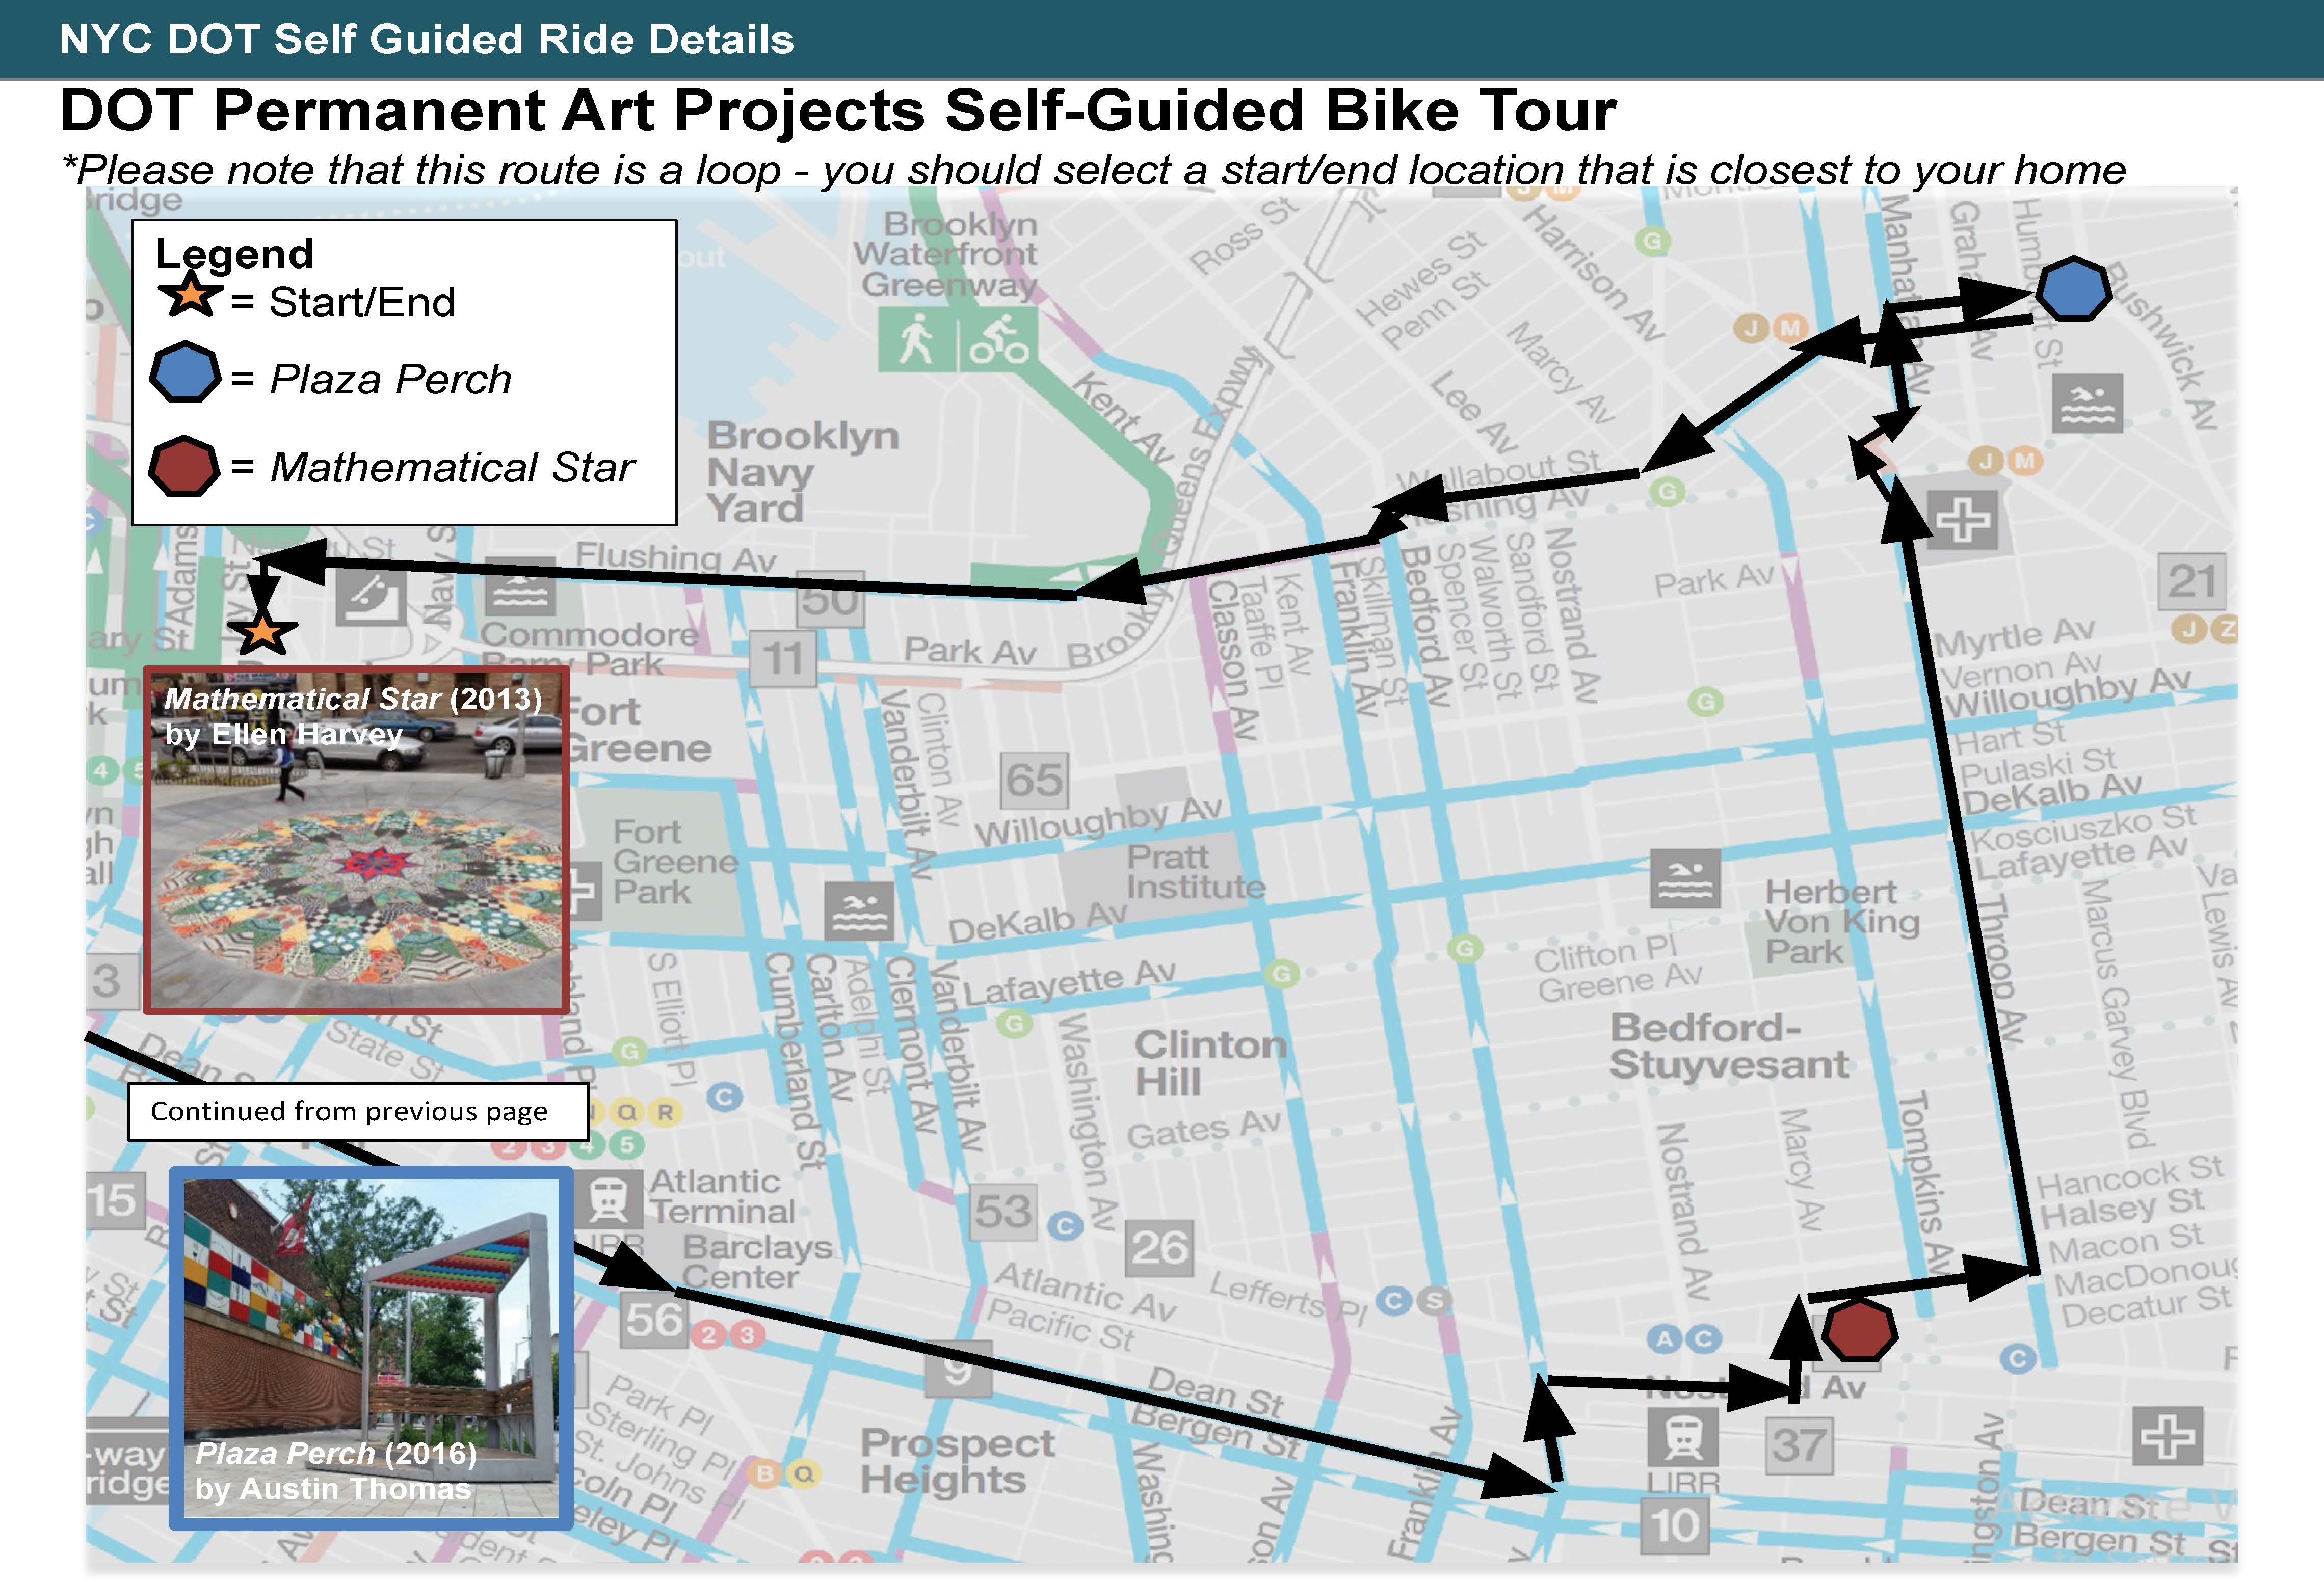 DOT Permanent Art Projects Self-Guided Bike Tour Part 2